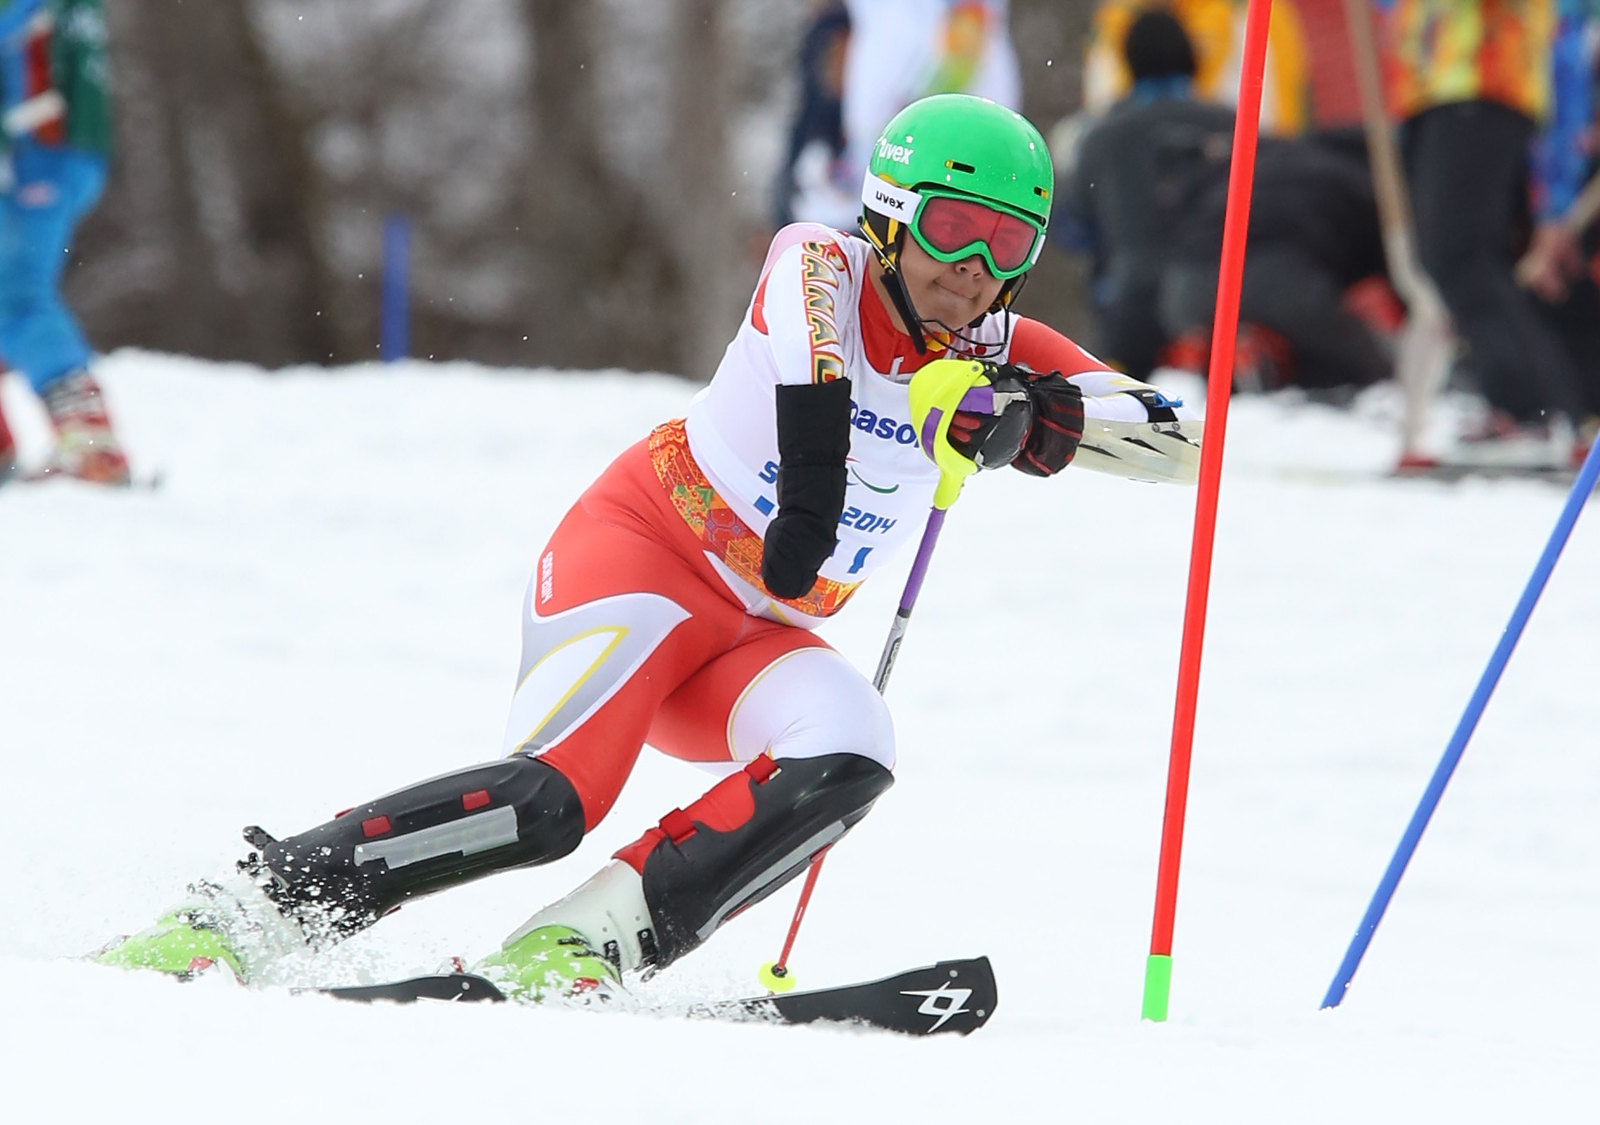 Kirk Schornstein maneouvres the slalom course at the 2014 Paralympic Winter Games in Sochi, RUS